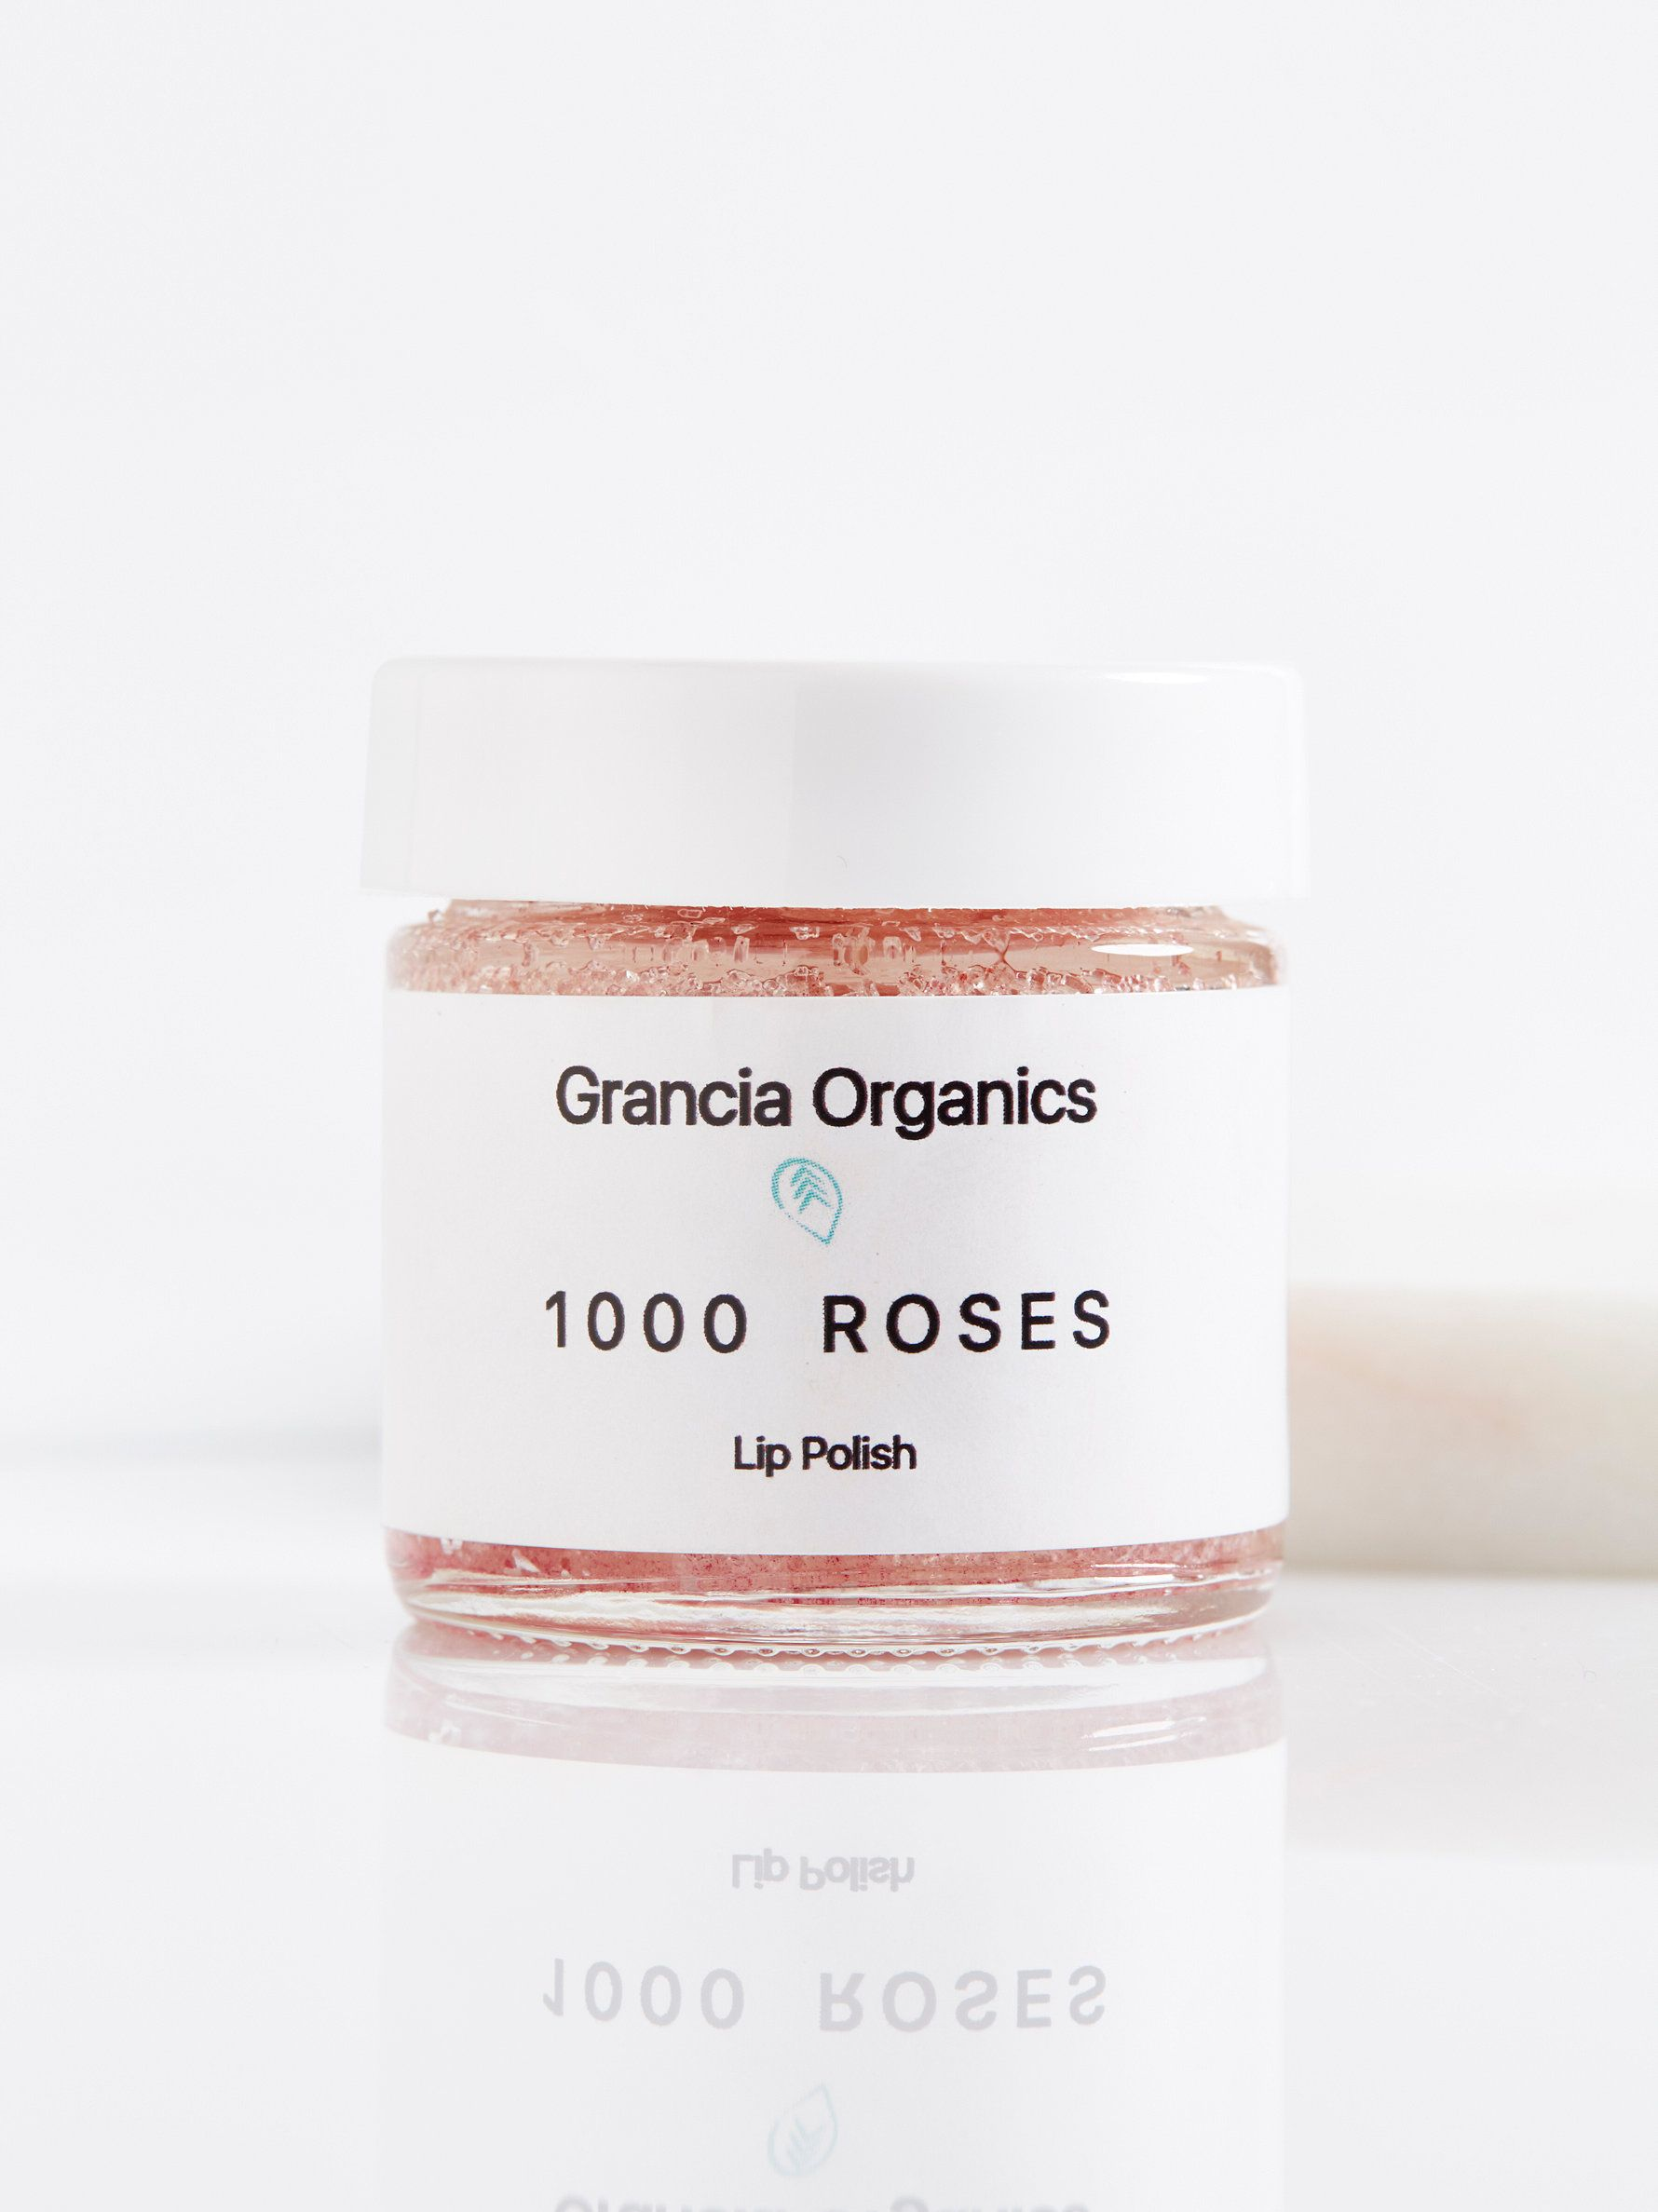 1000 Roses Lip Polish   **Grancia Organics**    Gently exfoliate lips with this all-natural, organic lip polish created in California for your healthiest pout. Crafted from a blend of shea butter, rose petals and virgin coconut oil to moisturize and hydrate lips while leaving them smooth and oh-so-lush.    * 1 oz.   * Intended for all skin types.   * **How to Use:**  For smoothing and softening your lips, scoop out a small amount of the 1000 rose petals lip polish. Apply to your lips and…